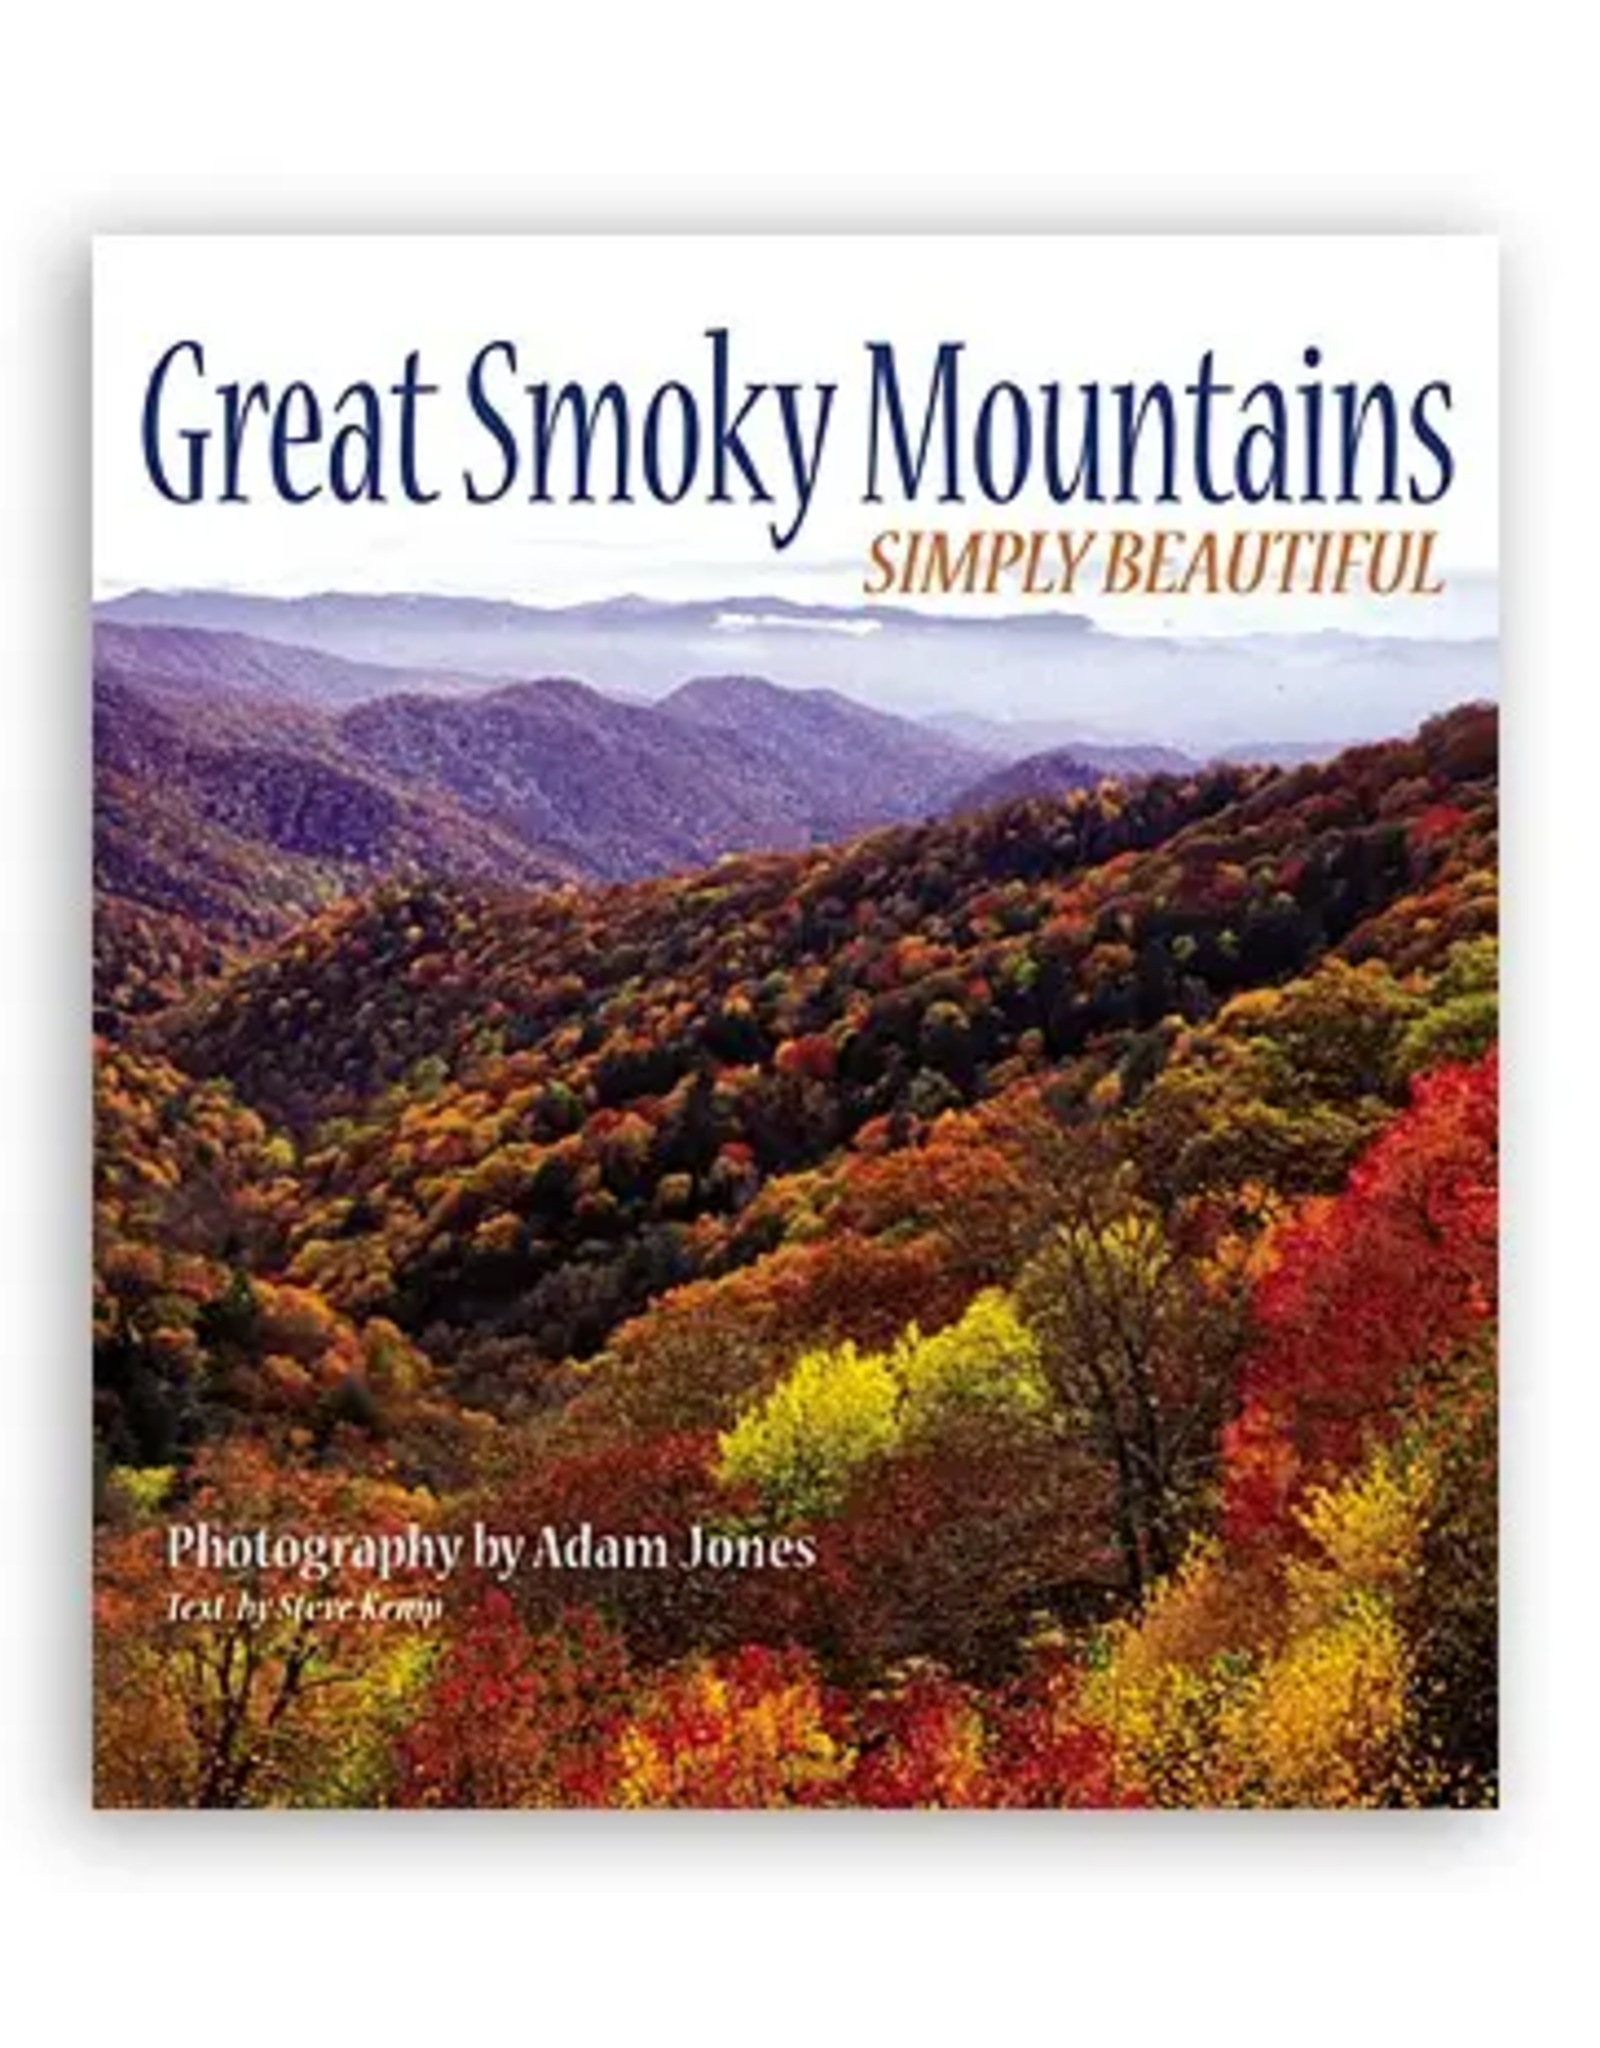 The Great Smoky Mountains: Simply Beautiful